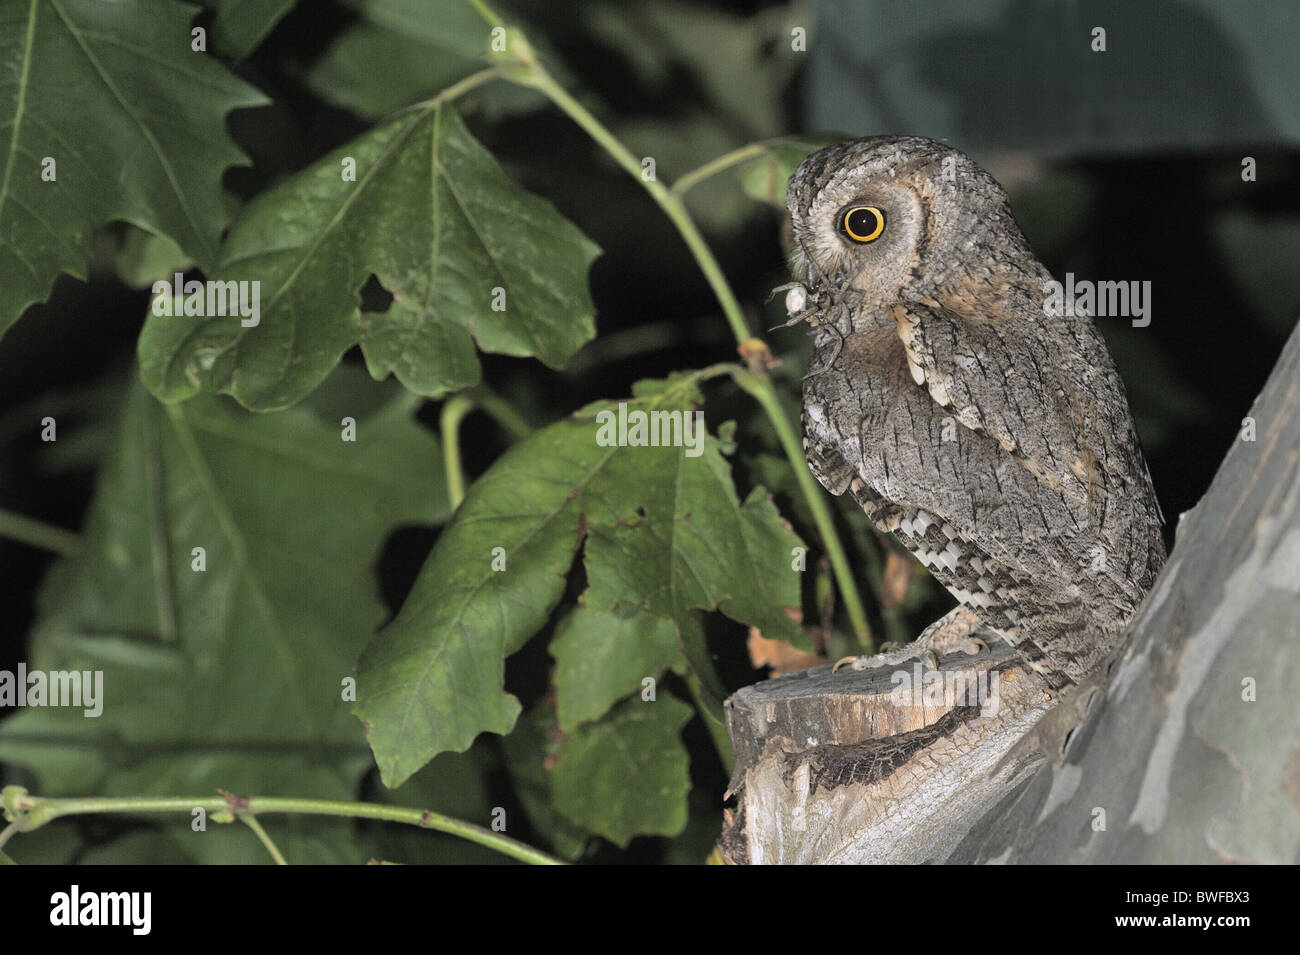 Scops owl - Eurasian scops owl - European scops owl (Otus scops) bringing prey to feed its chicks waiting in a nesting - Stock Image